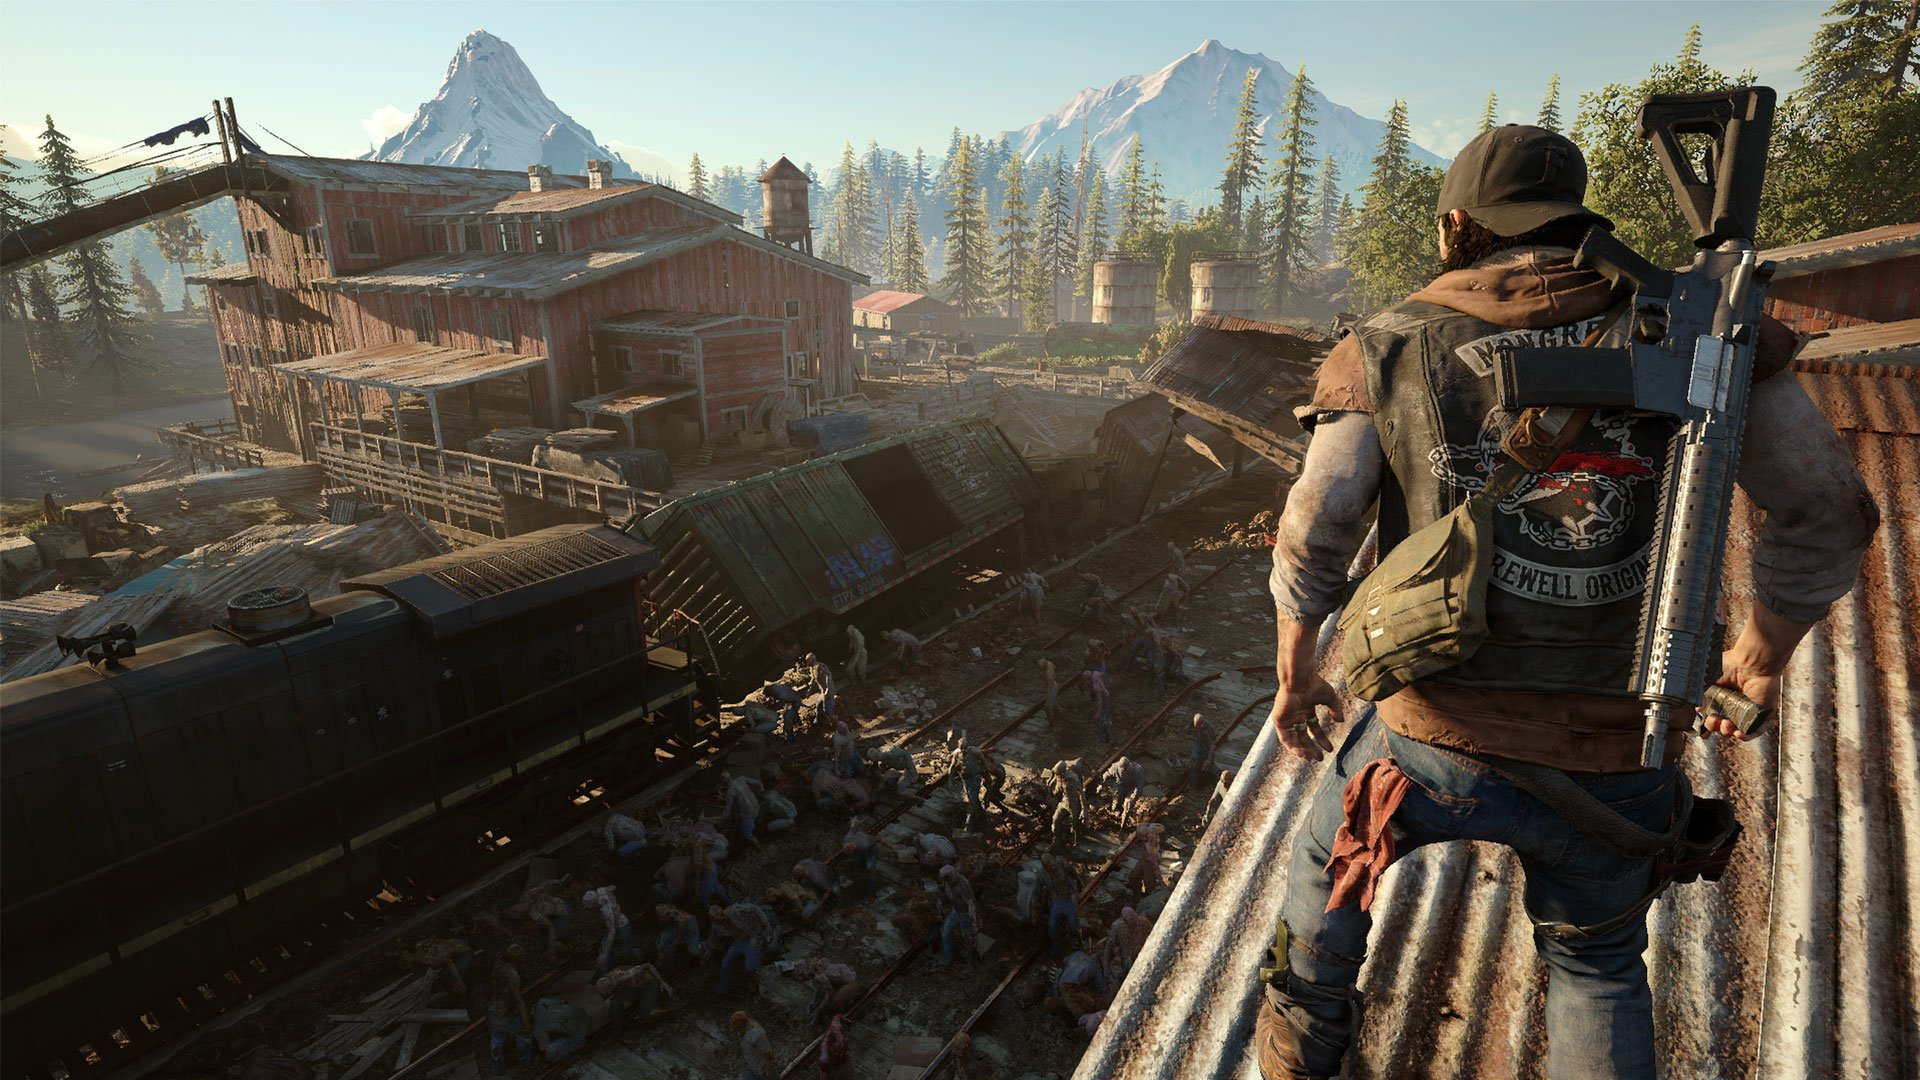 PS4 Exclusive Days Gone Unearths Impressive Gameplay Demo, But No Release Date